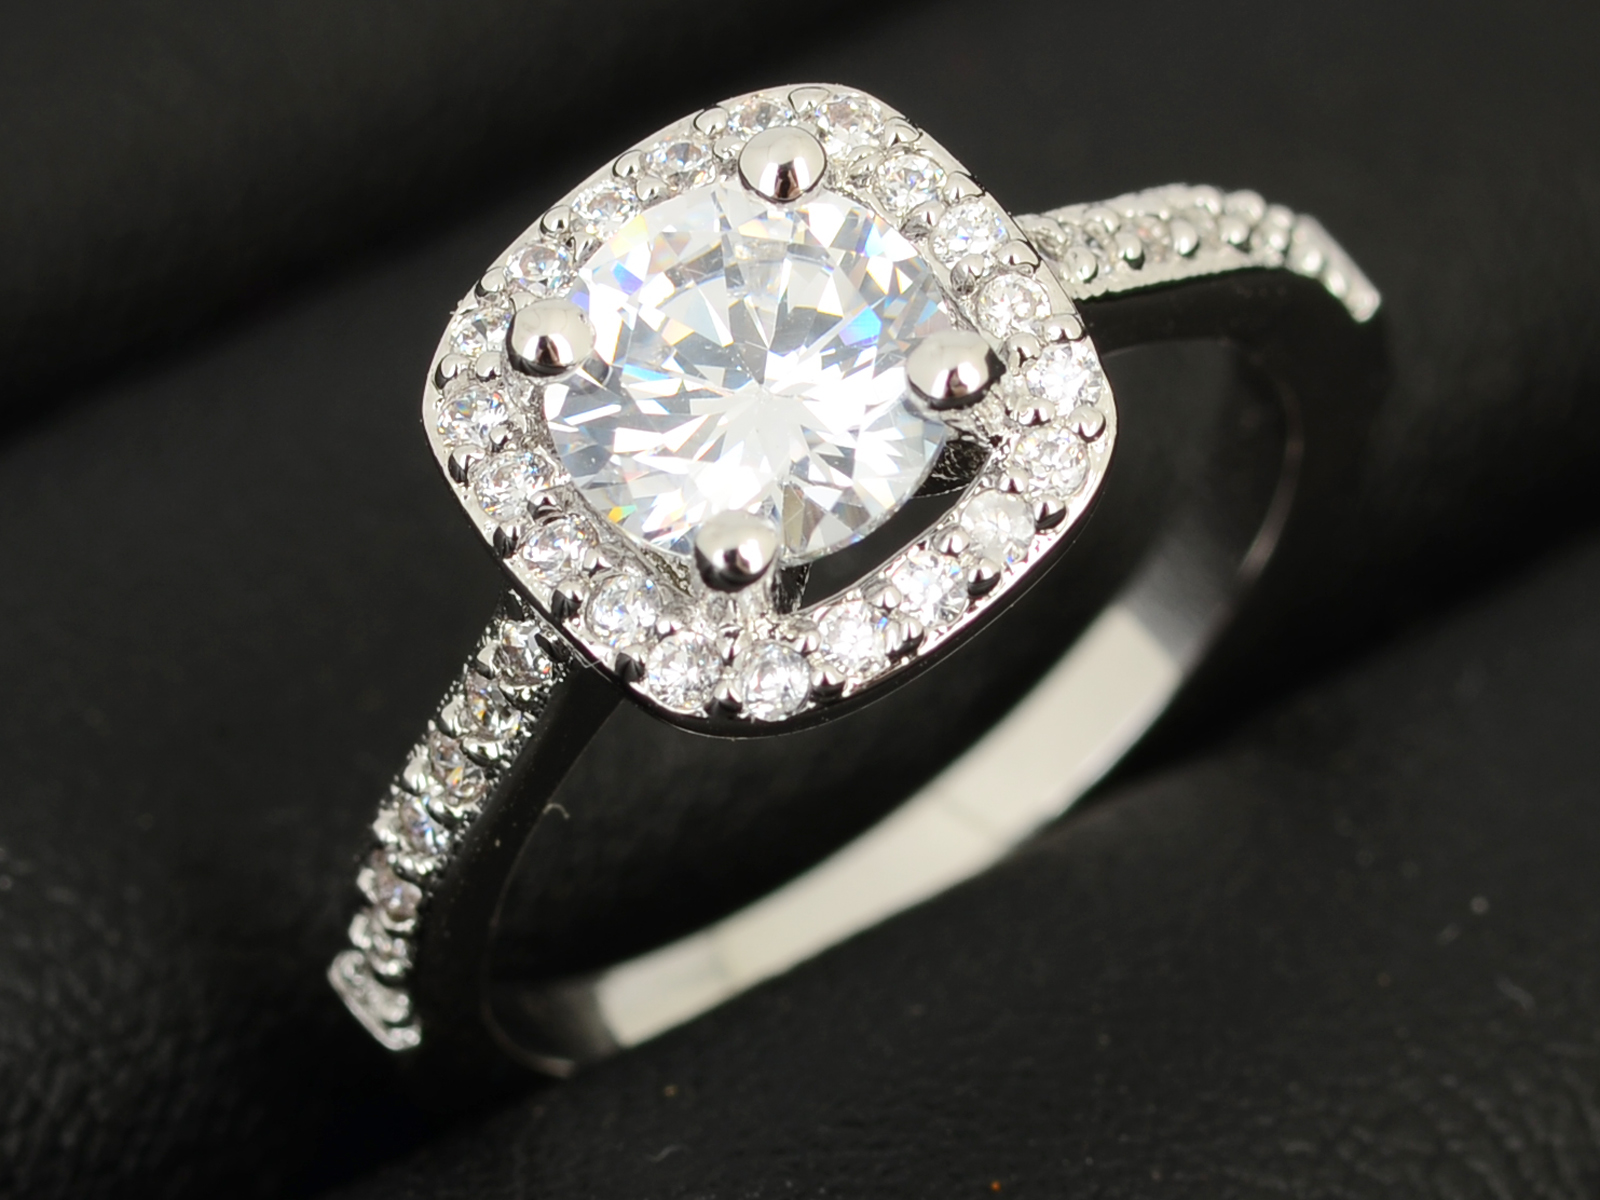 New Women s Wedding Rings Engagement Ring Crystal Jewelry Zircon Size 5 6